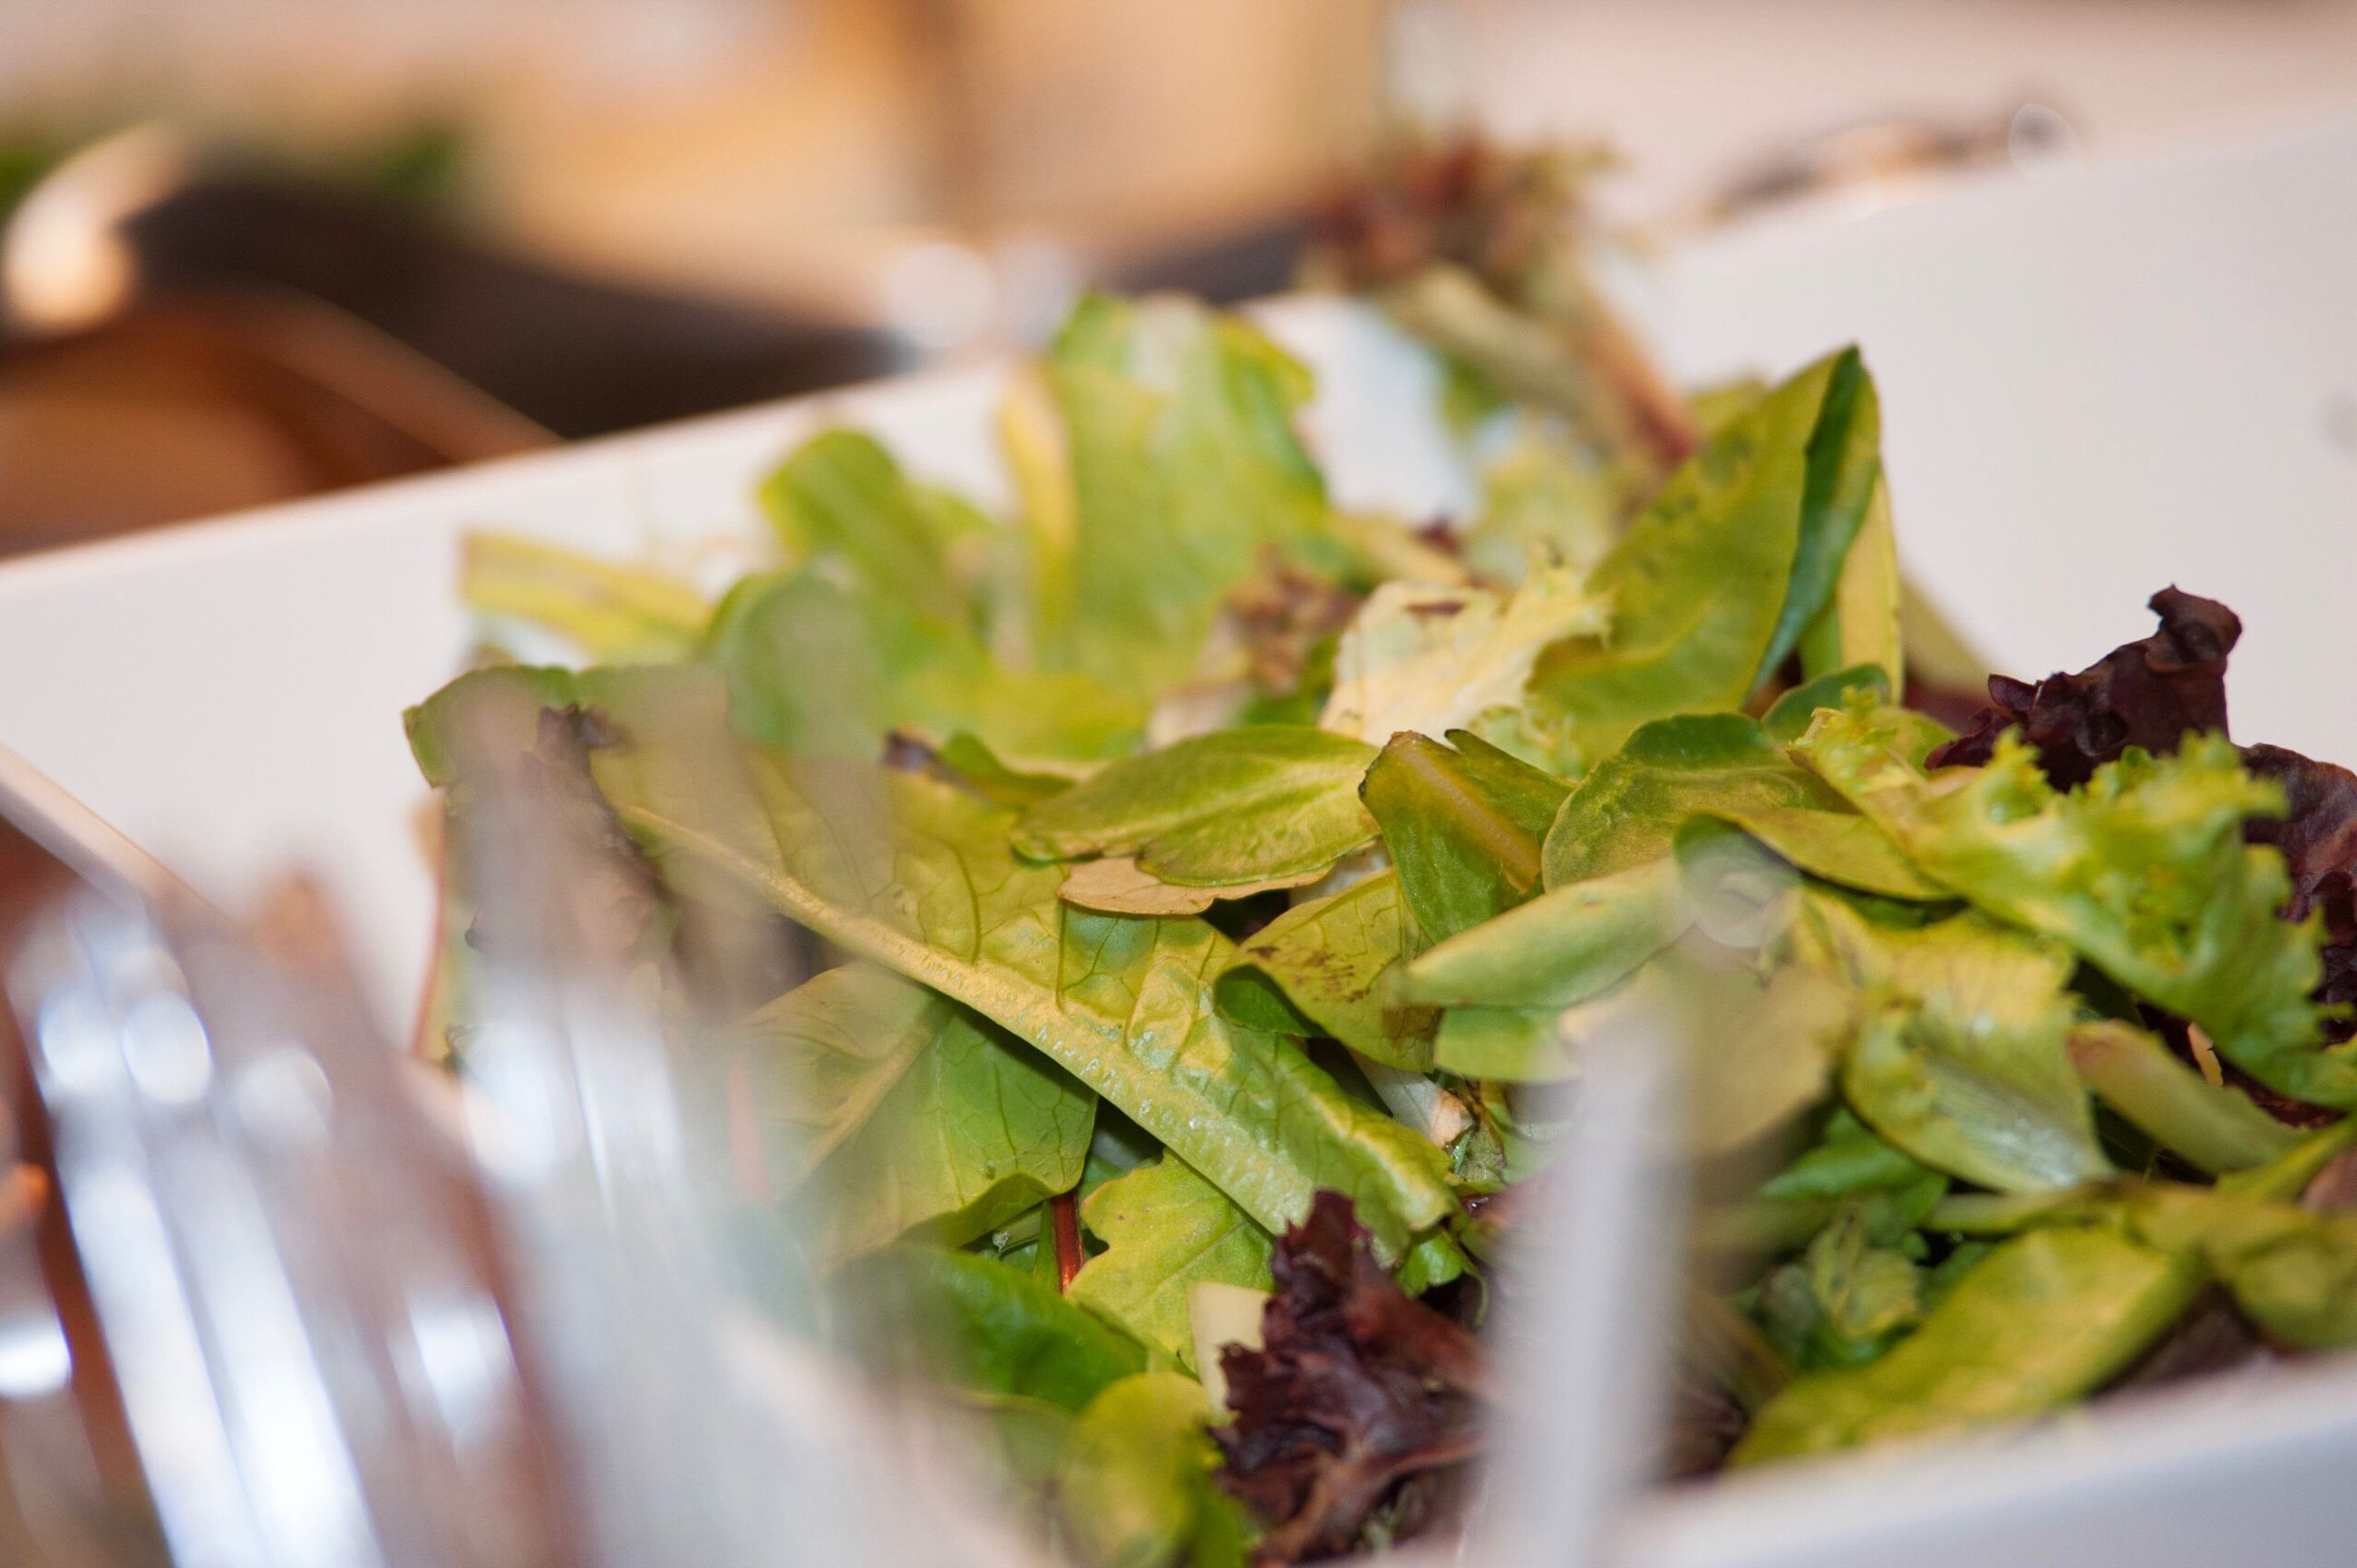 food and drink, food, green color, plate, selective focus, healthy eating, no people, close-up, table, freshness, indoors, vegetable, ready-to-eat, leaf, day